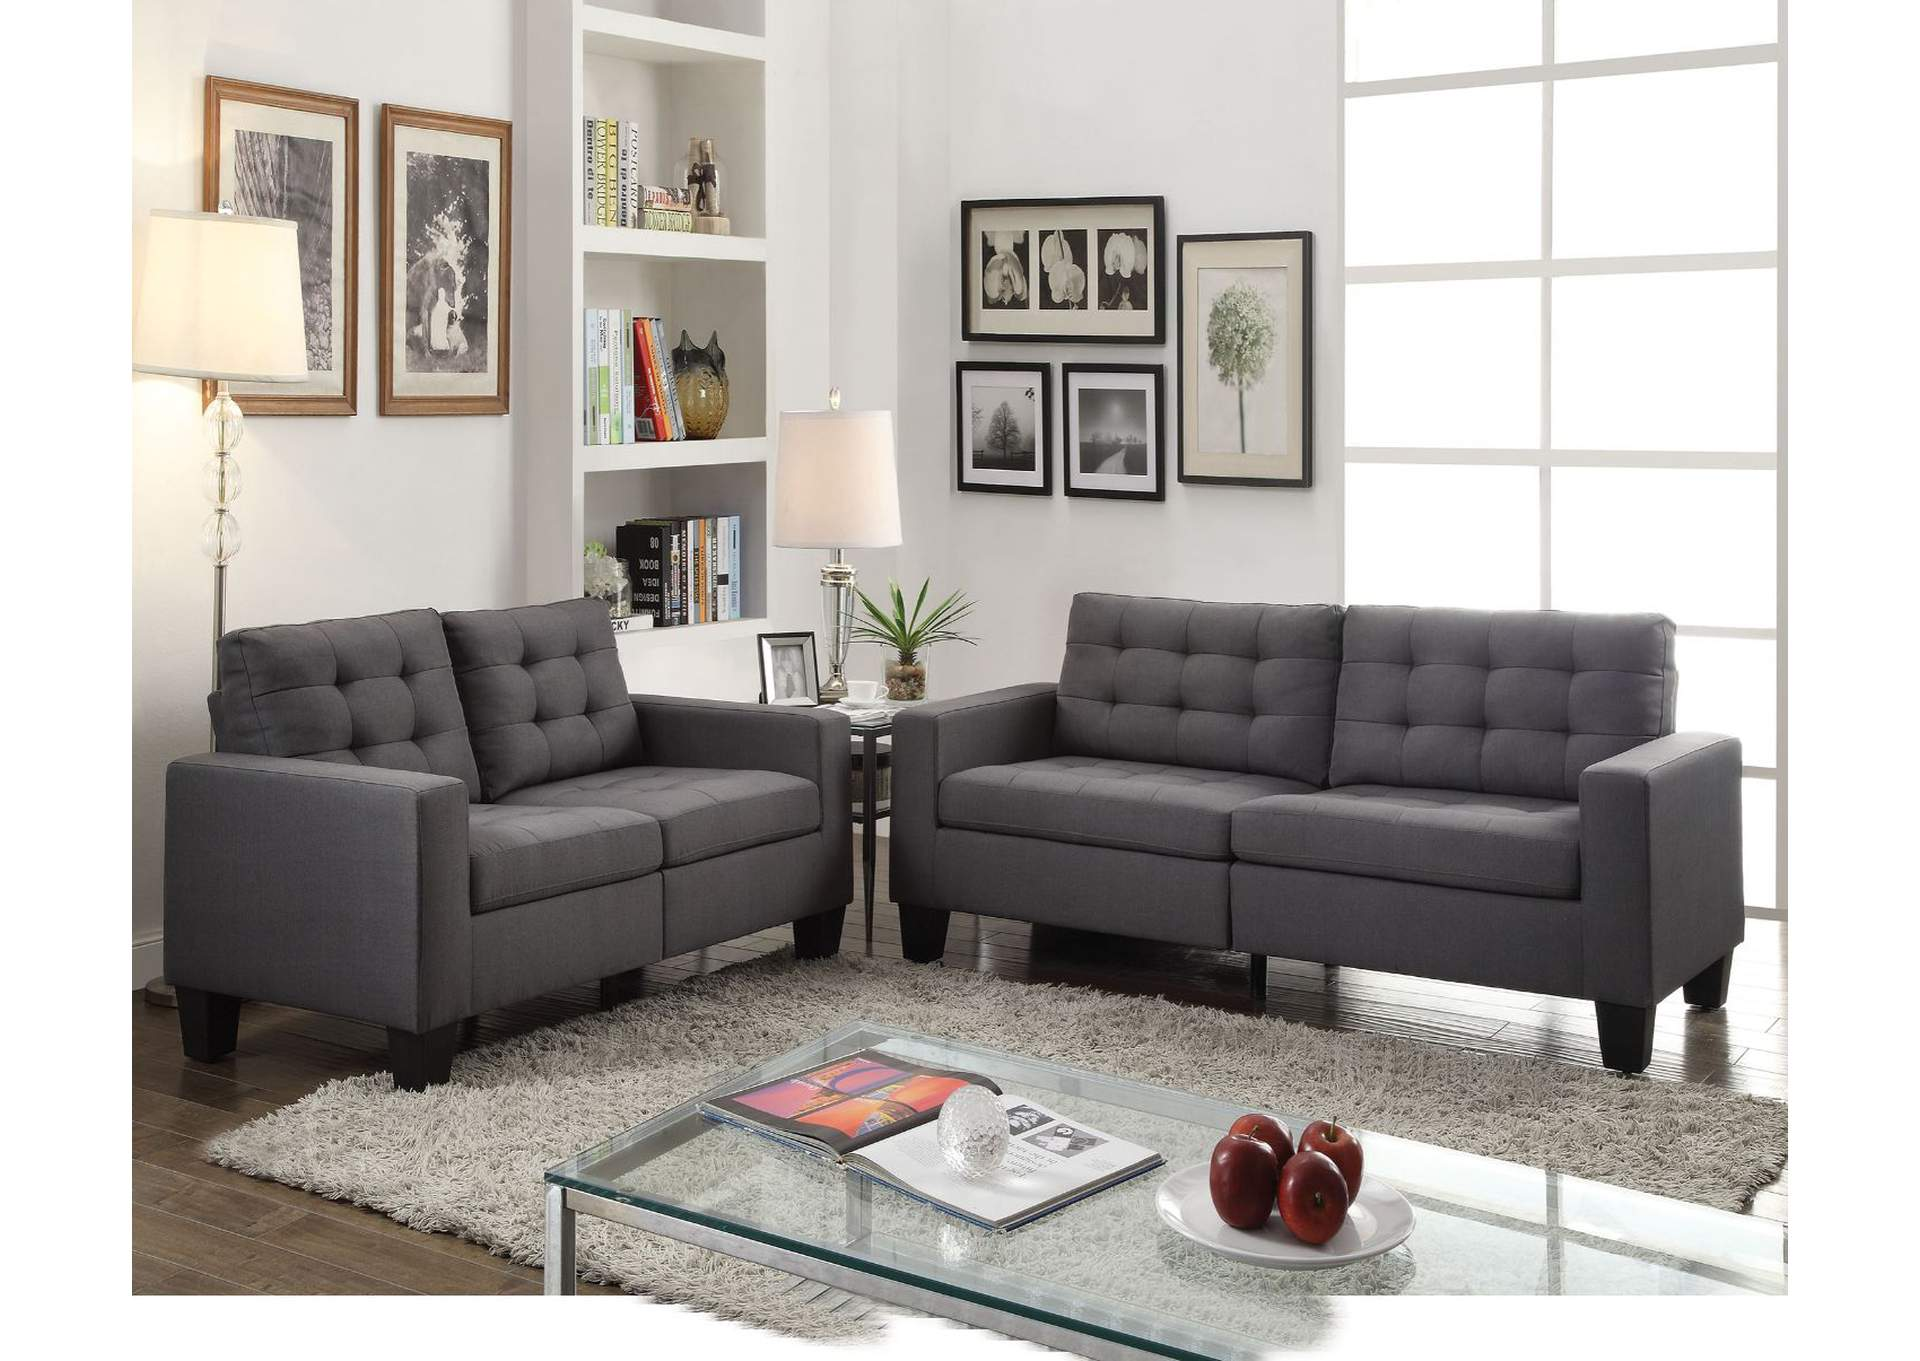 Earsom Gray Linen Sofa,Acme